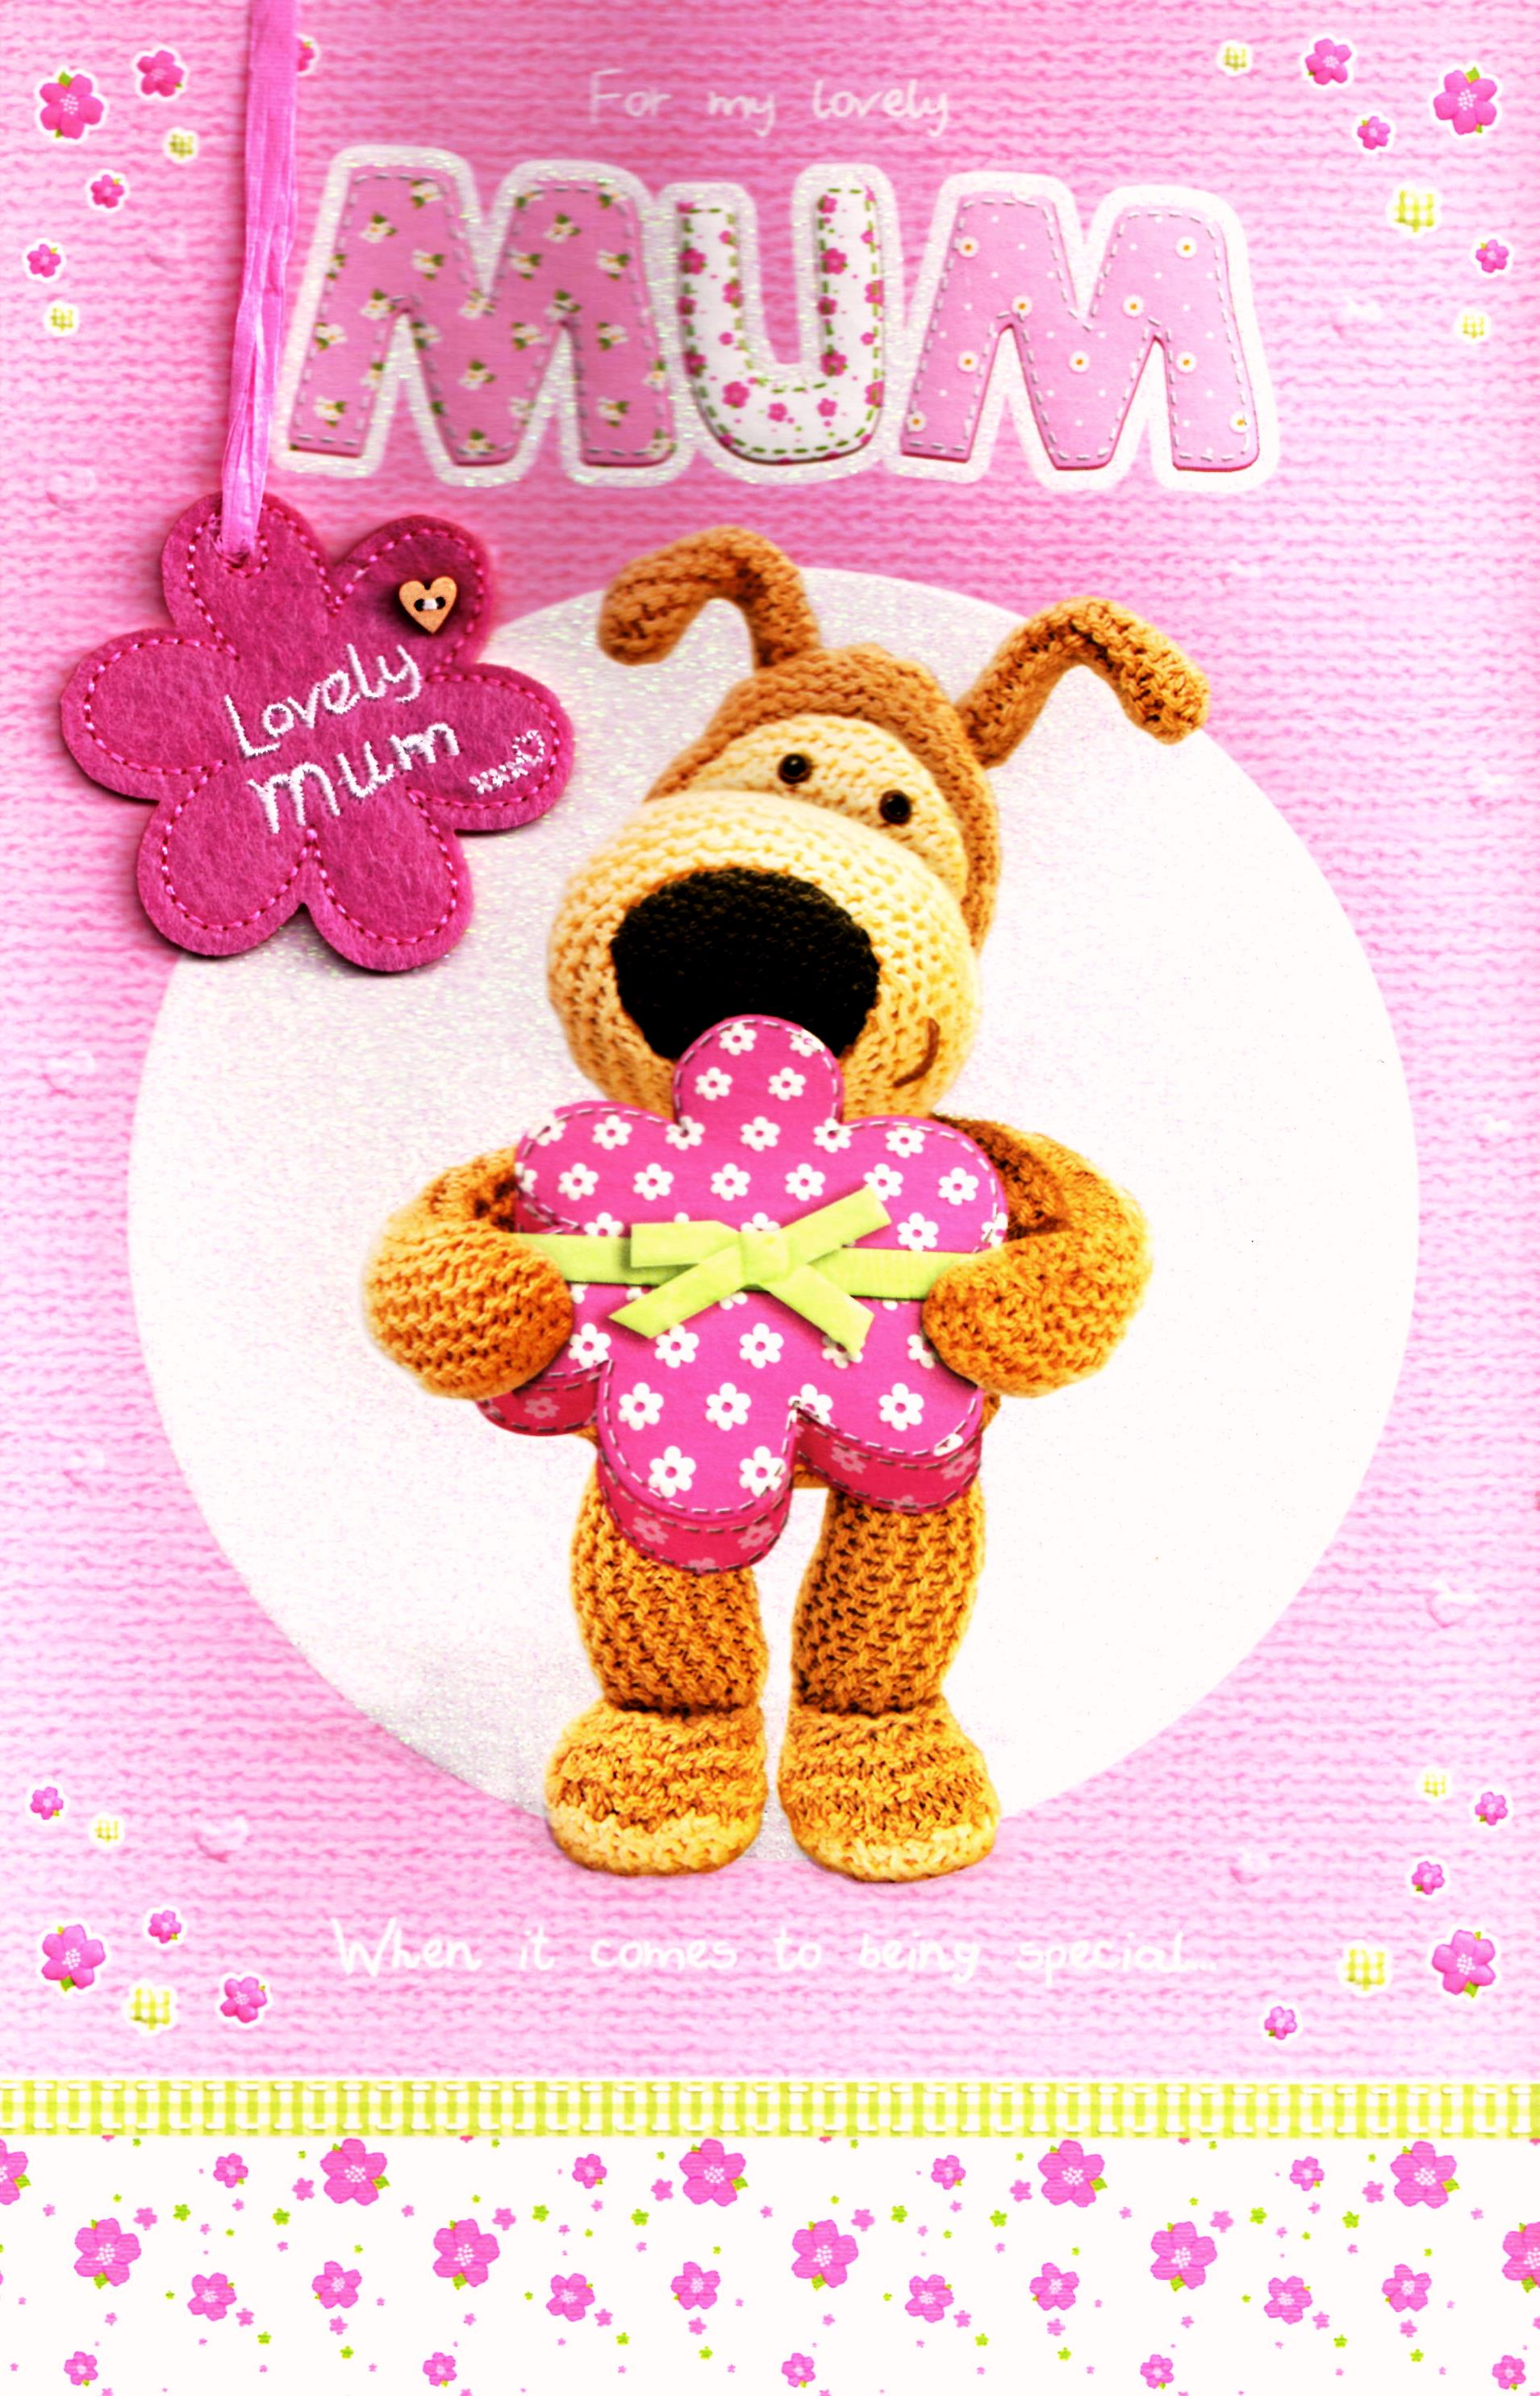 Boofle large for my lovely mum happy mothers day card lovely sentinel boofle large for my lovely mum happy mothers day card lovely greeting cards new m4hsunfo